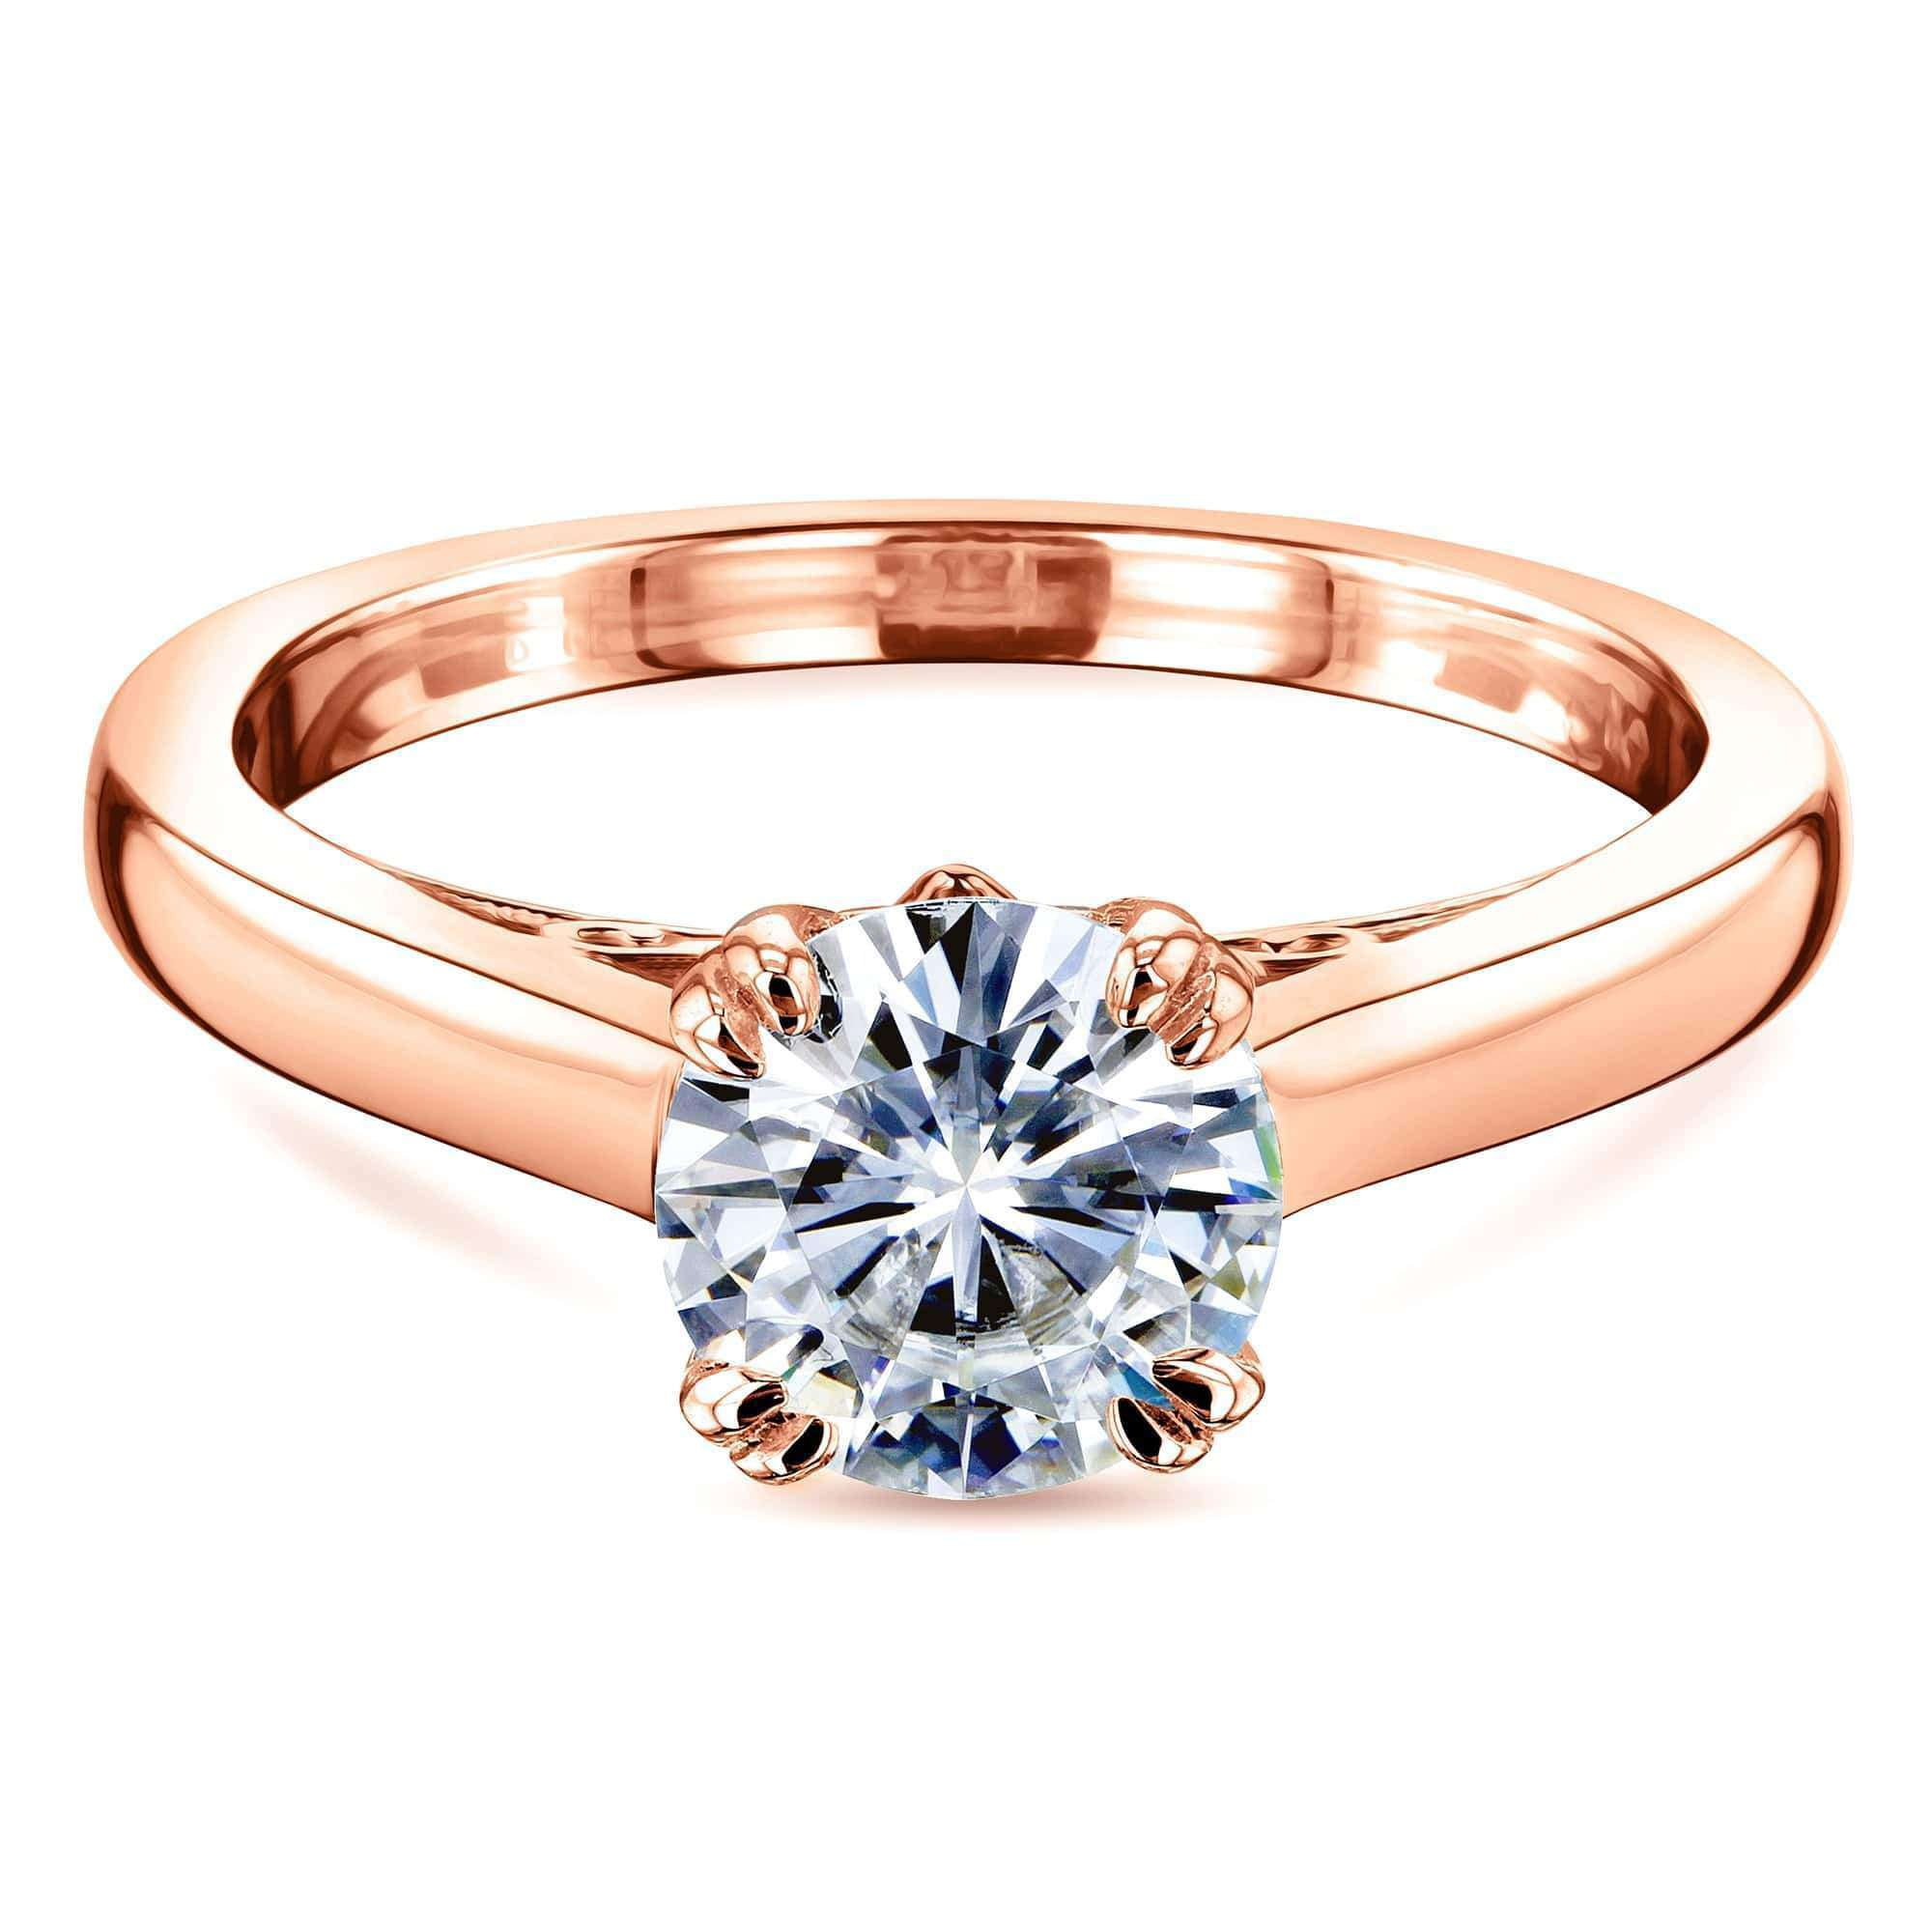 Compare 1ct Round Forever One Moissanite Solitaire W-Prong Ring - rose-gold 6.5